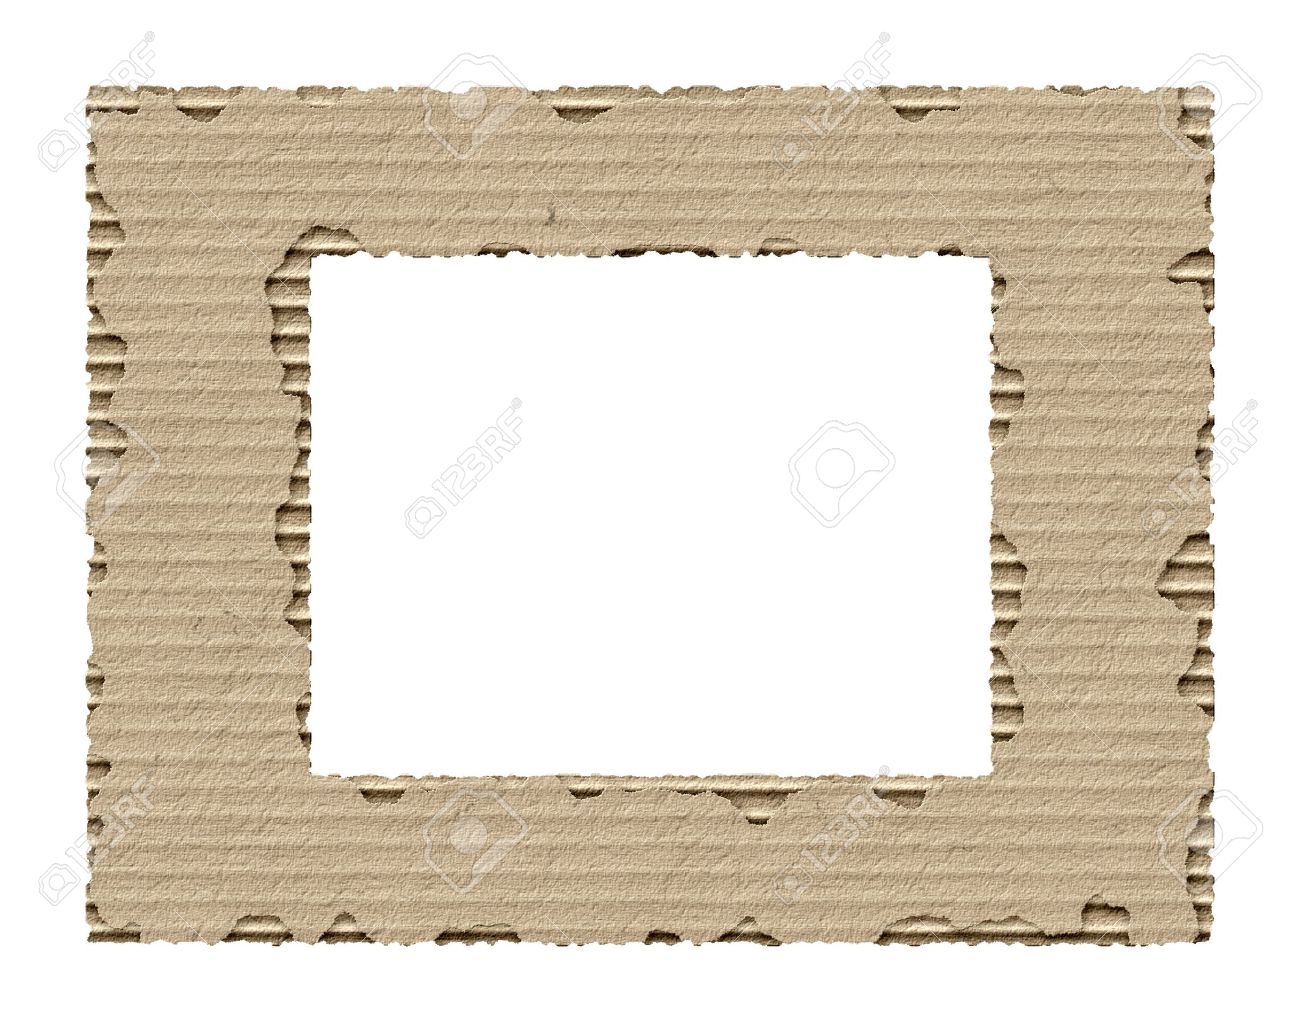 Frame Made From Torn Cardboard Stock Photo, Picture And Royalty Free ...